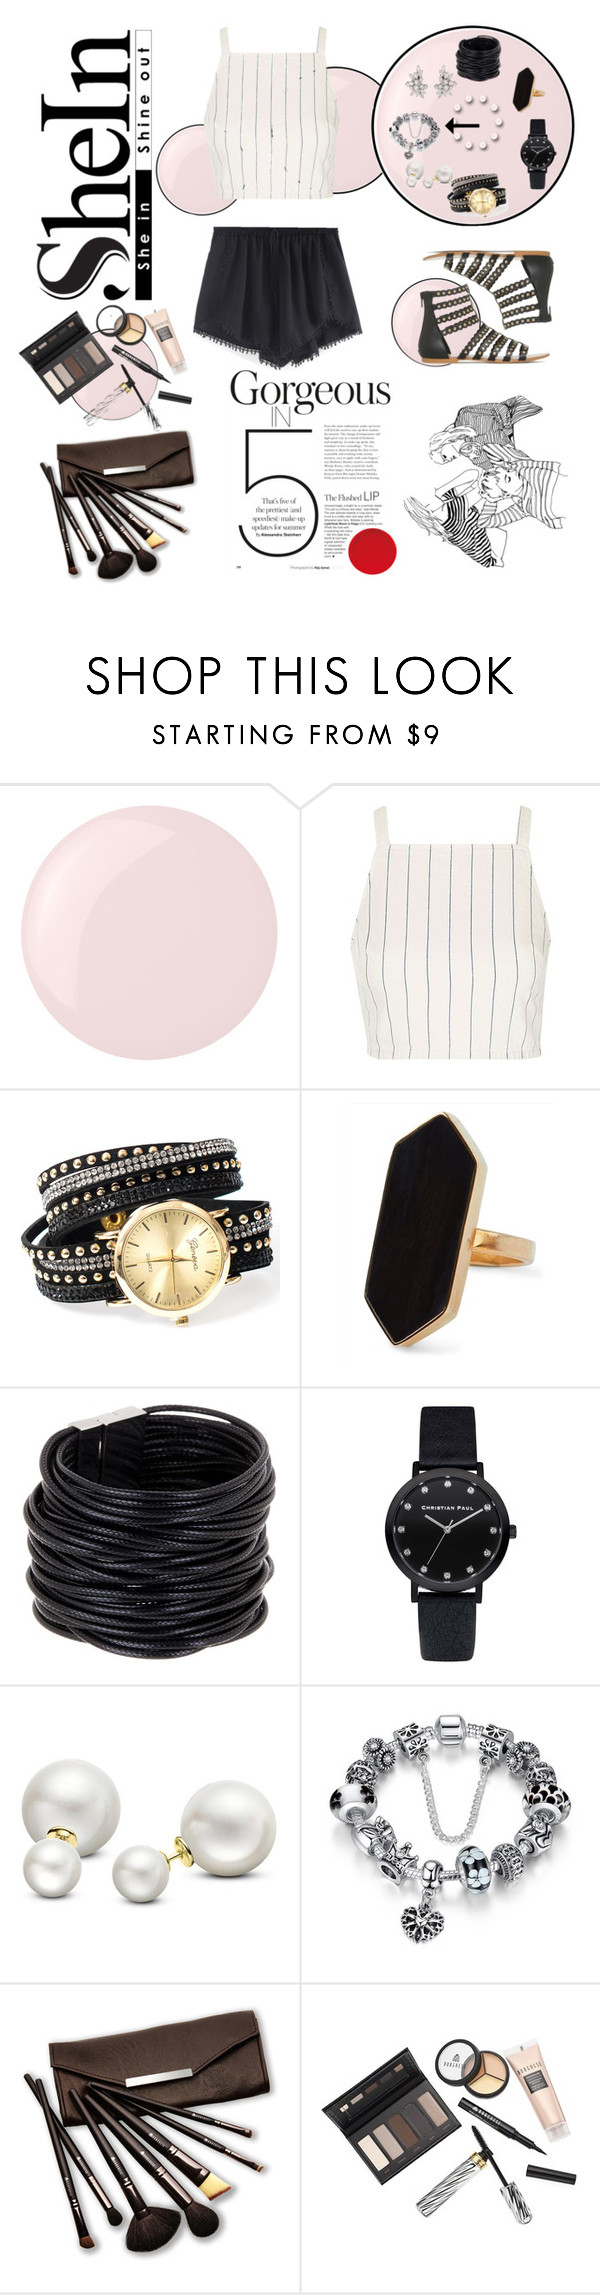 """PomPomShorts"" by prettypink-vp ❤ liked on Polyvore featuring Essie, Topshop, Jaeger, Saachi, Allurez and Borghese"